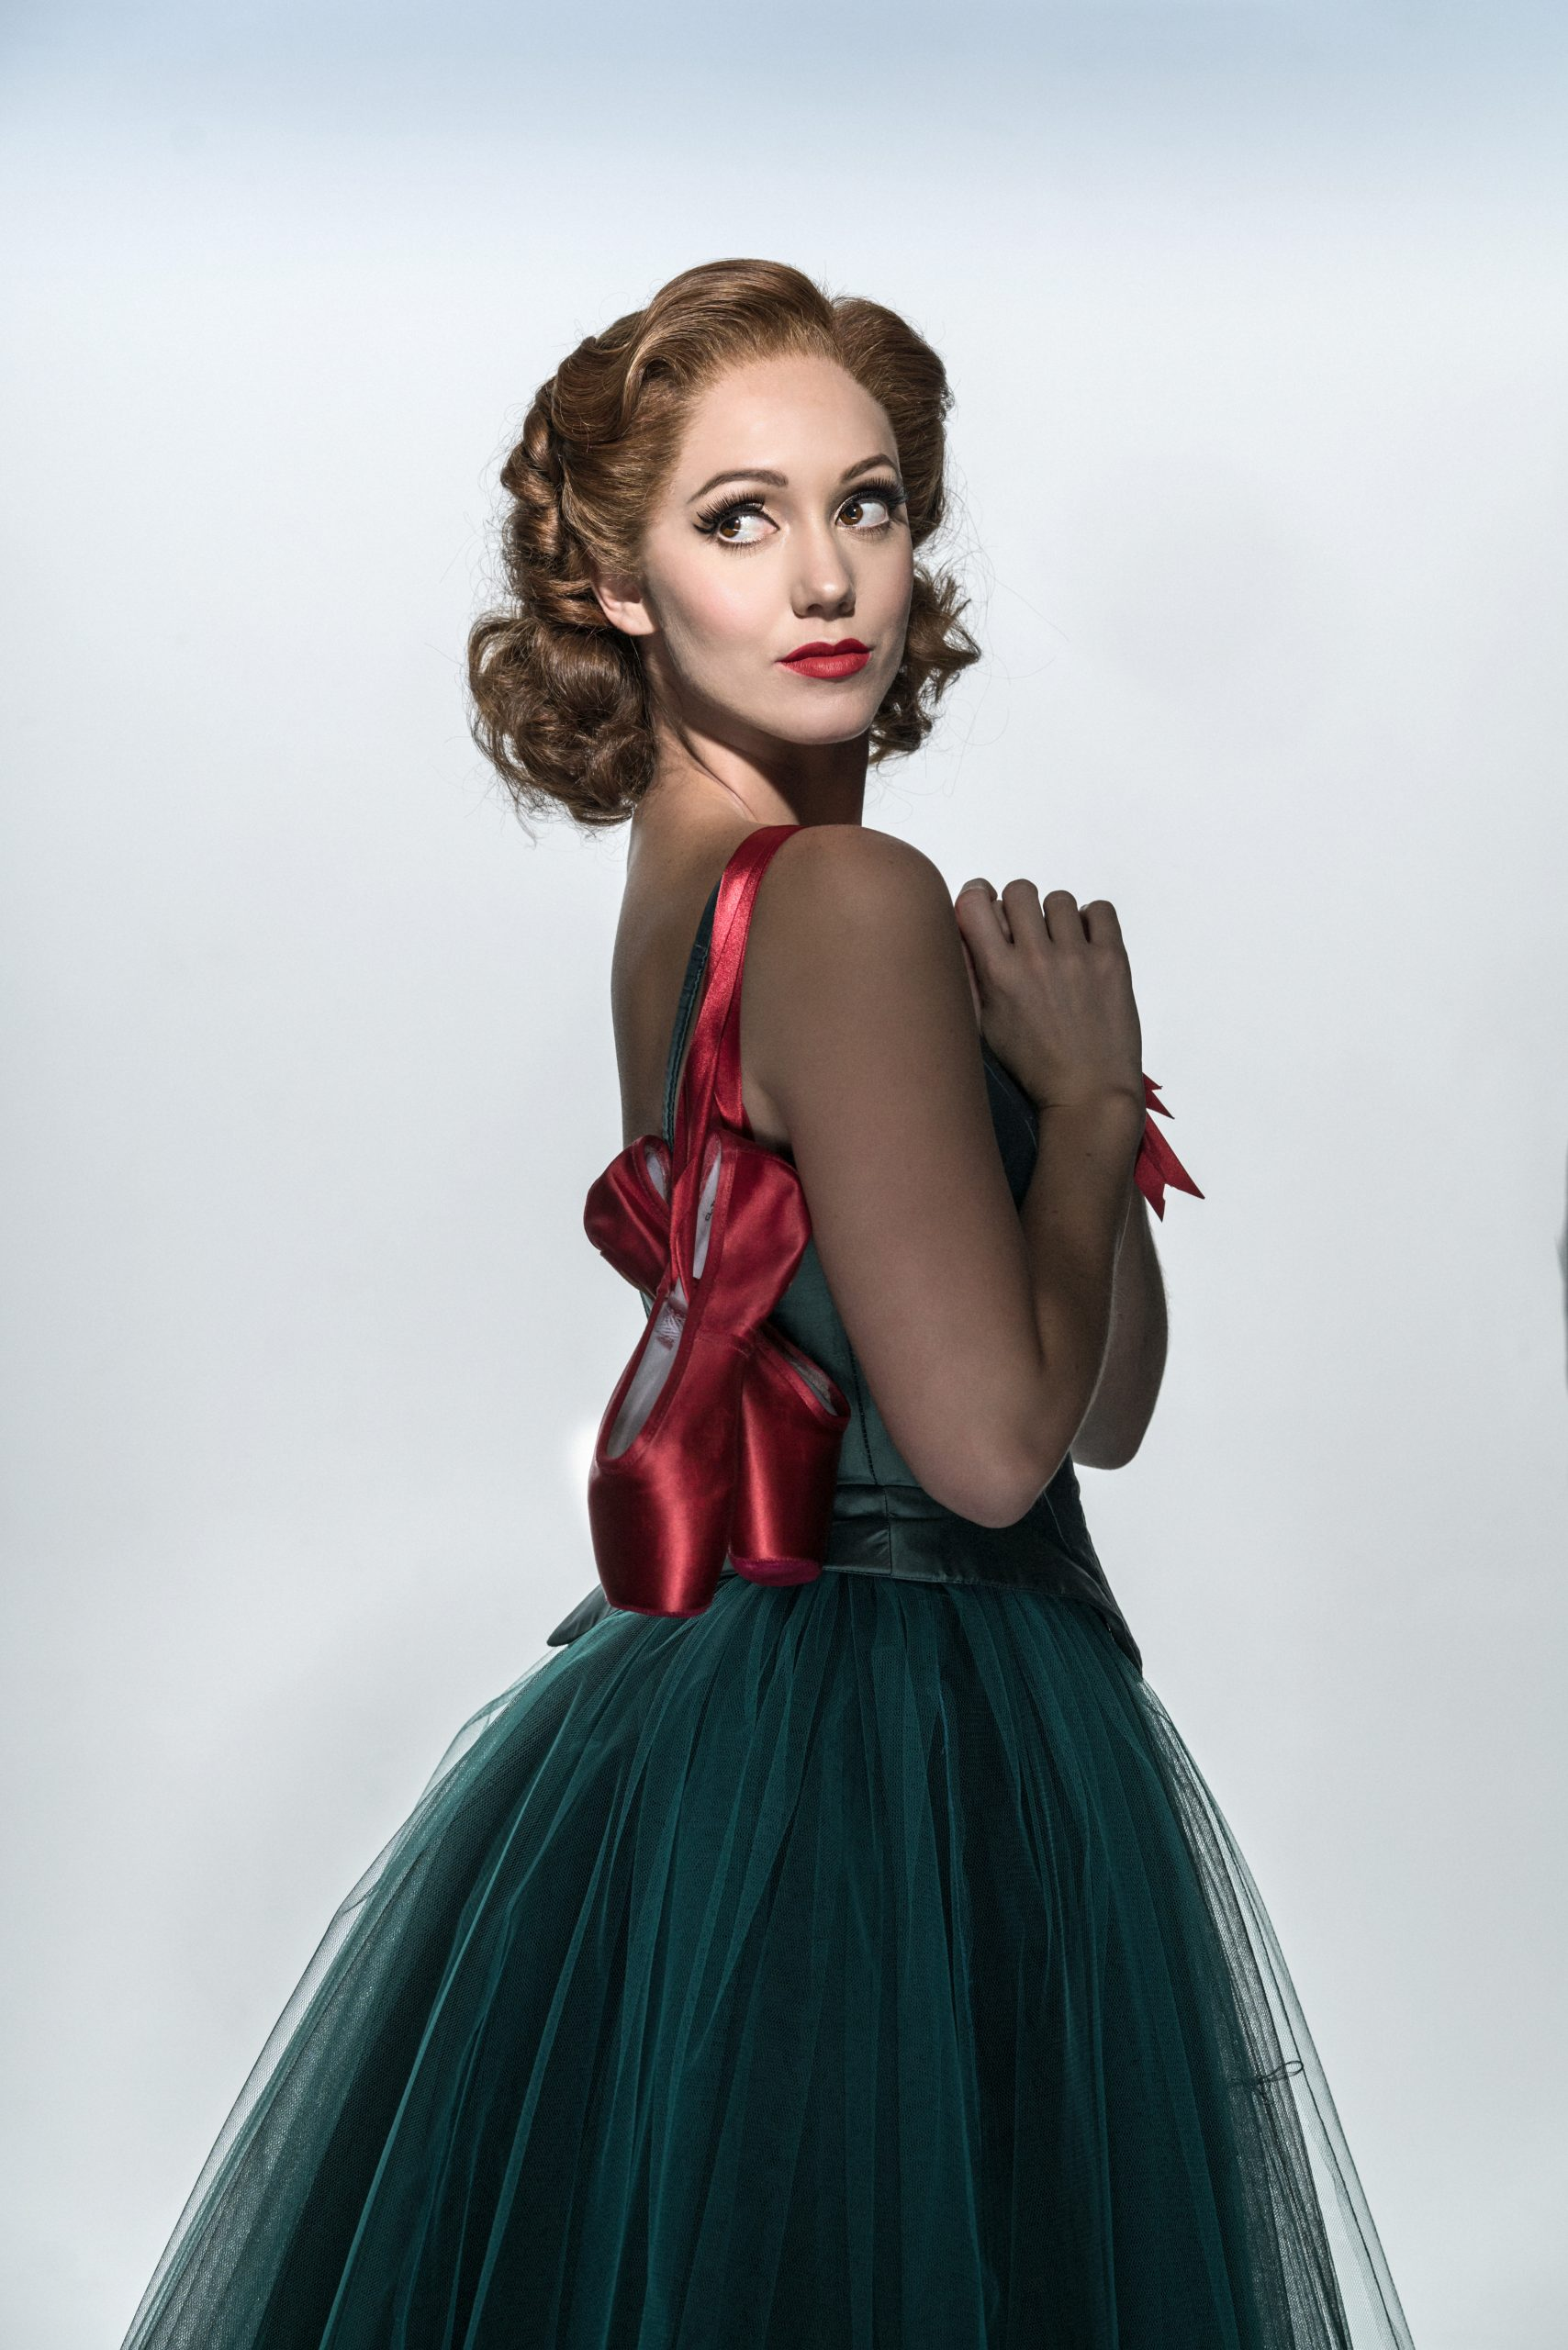 The Red Shoes. Matthew Bourne's production of The Red Shoes. Ashley Shaw as Victoria Page.